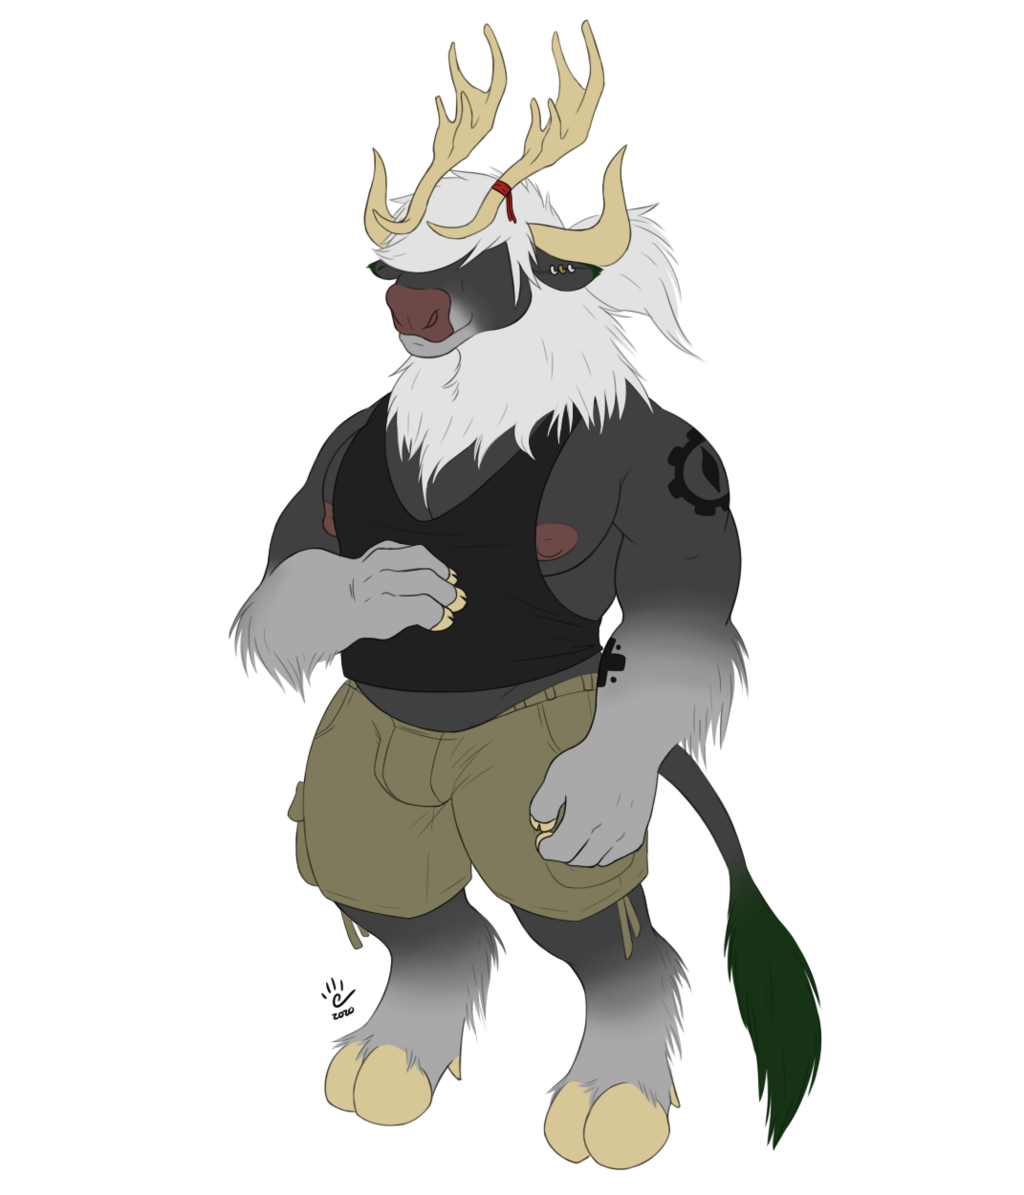 Most recent image: Bull-ified Erken